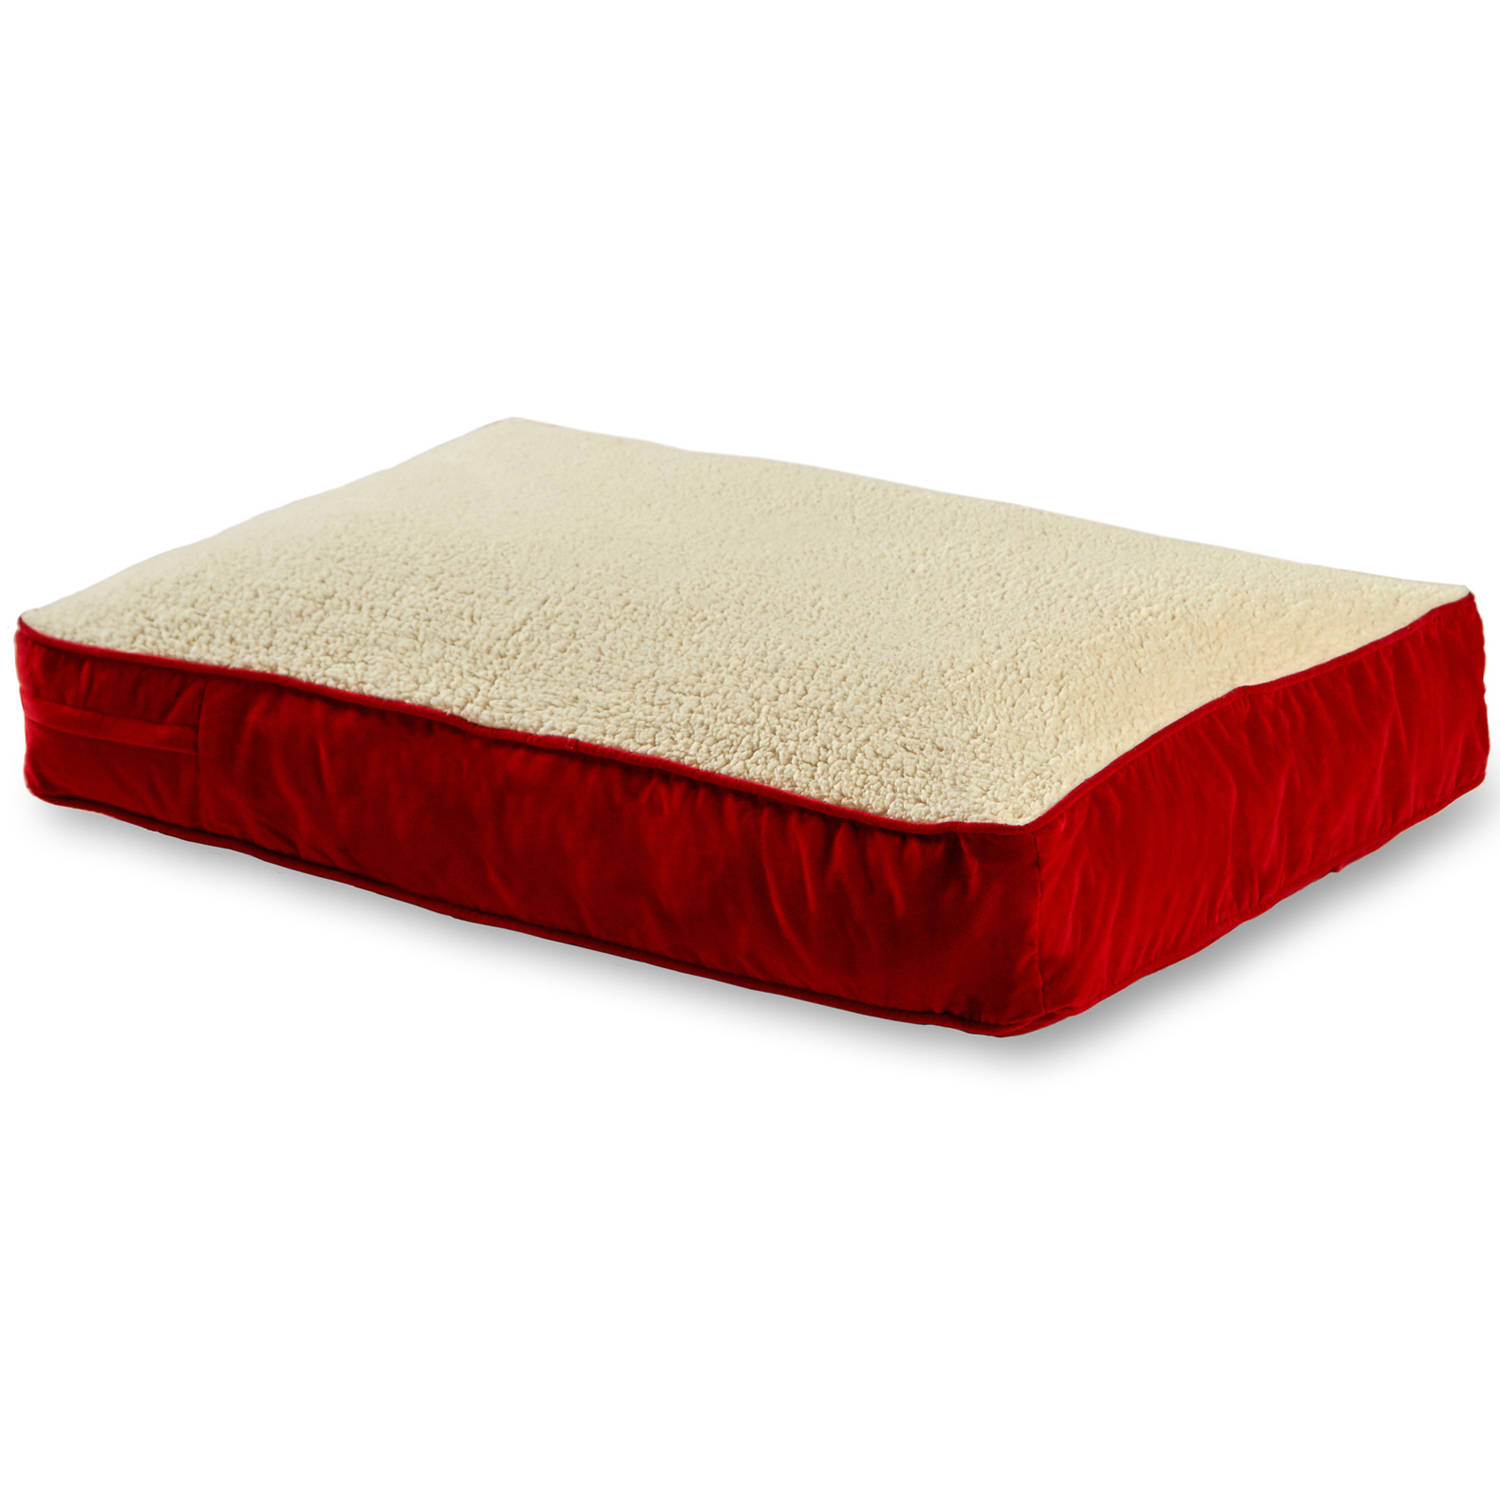 "Happy Hounds Buster Dog Bed, Large, 36"" x 48"", Crimson/Sh..."